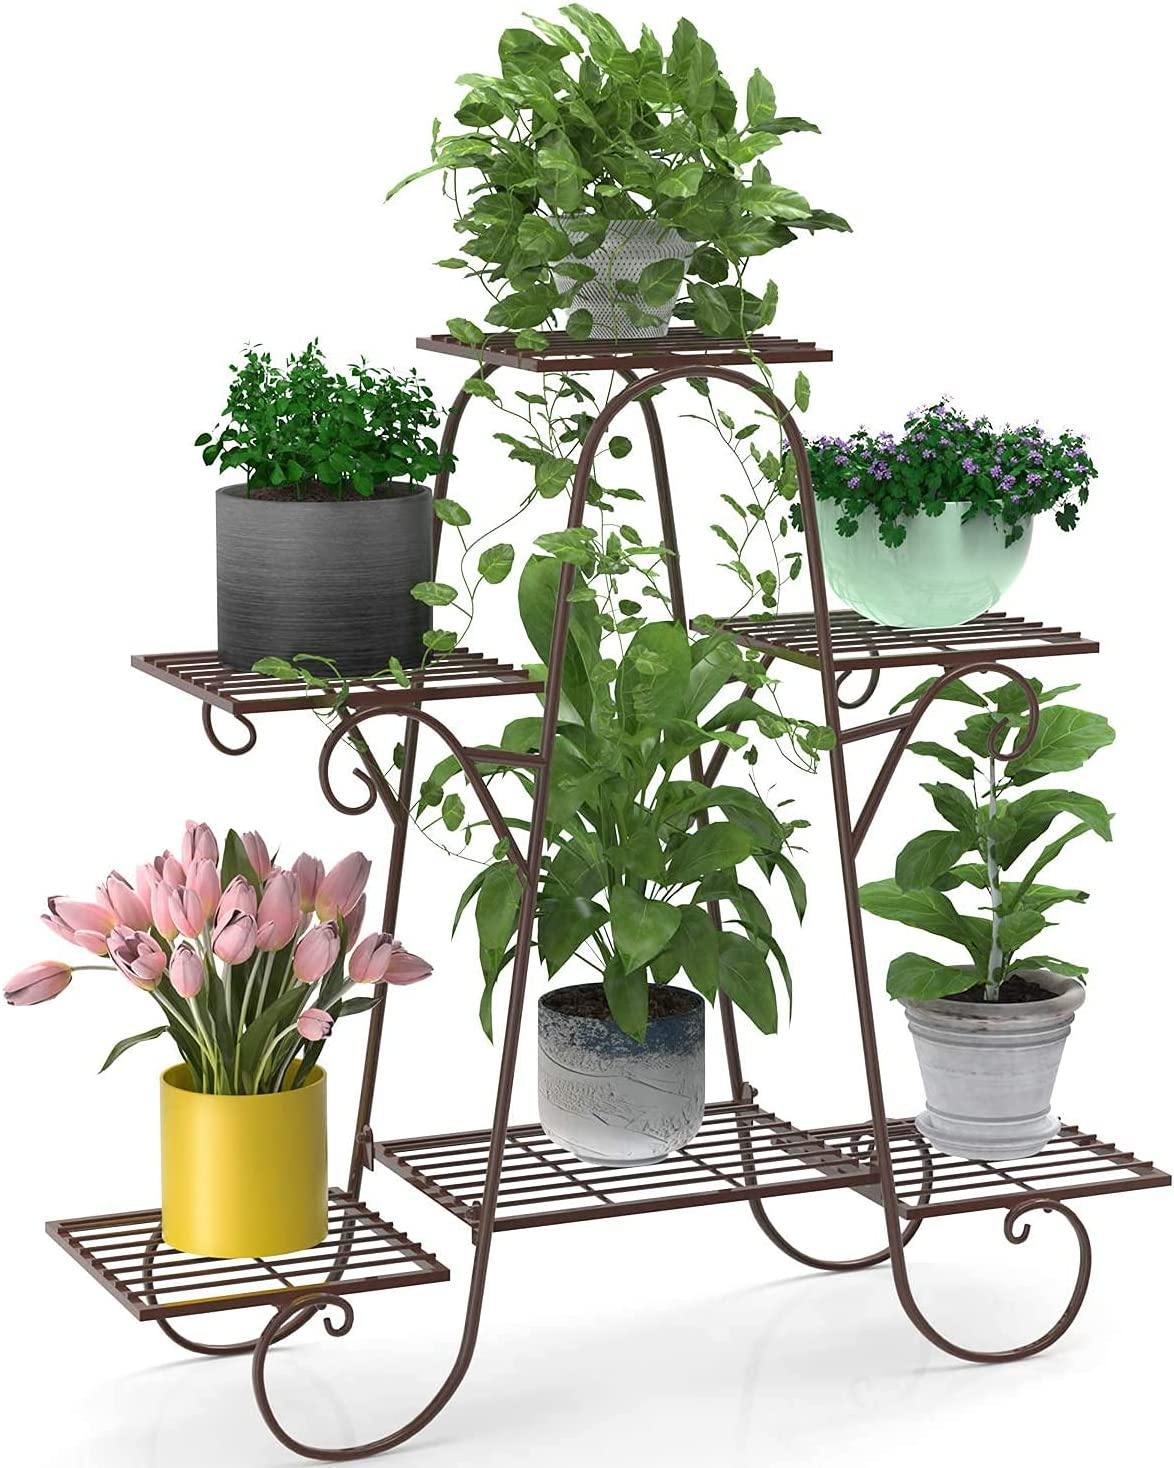 6 Tier Metal Plant Stand Shelves Holder Max 42% OFF Display Flower for Pot I Super sale period limited